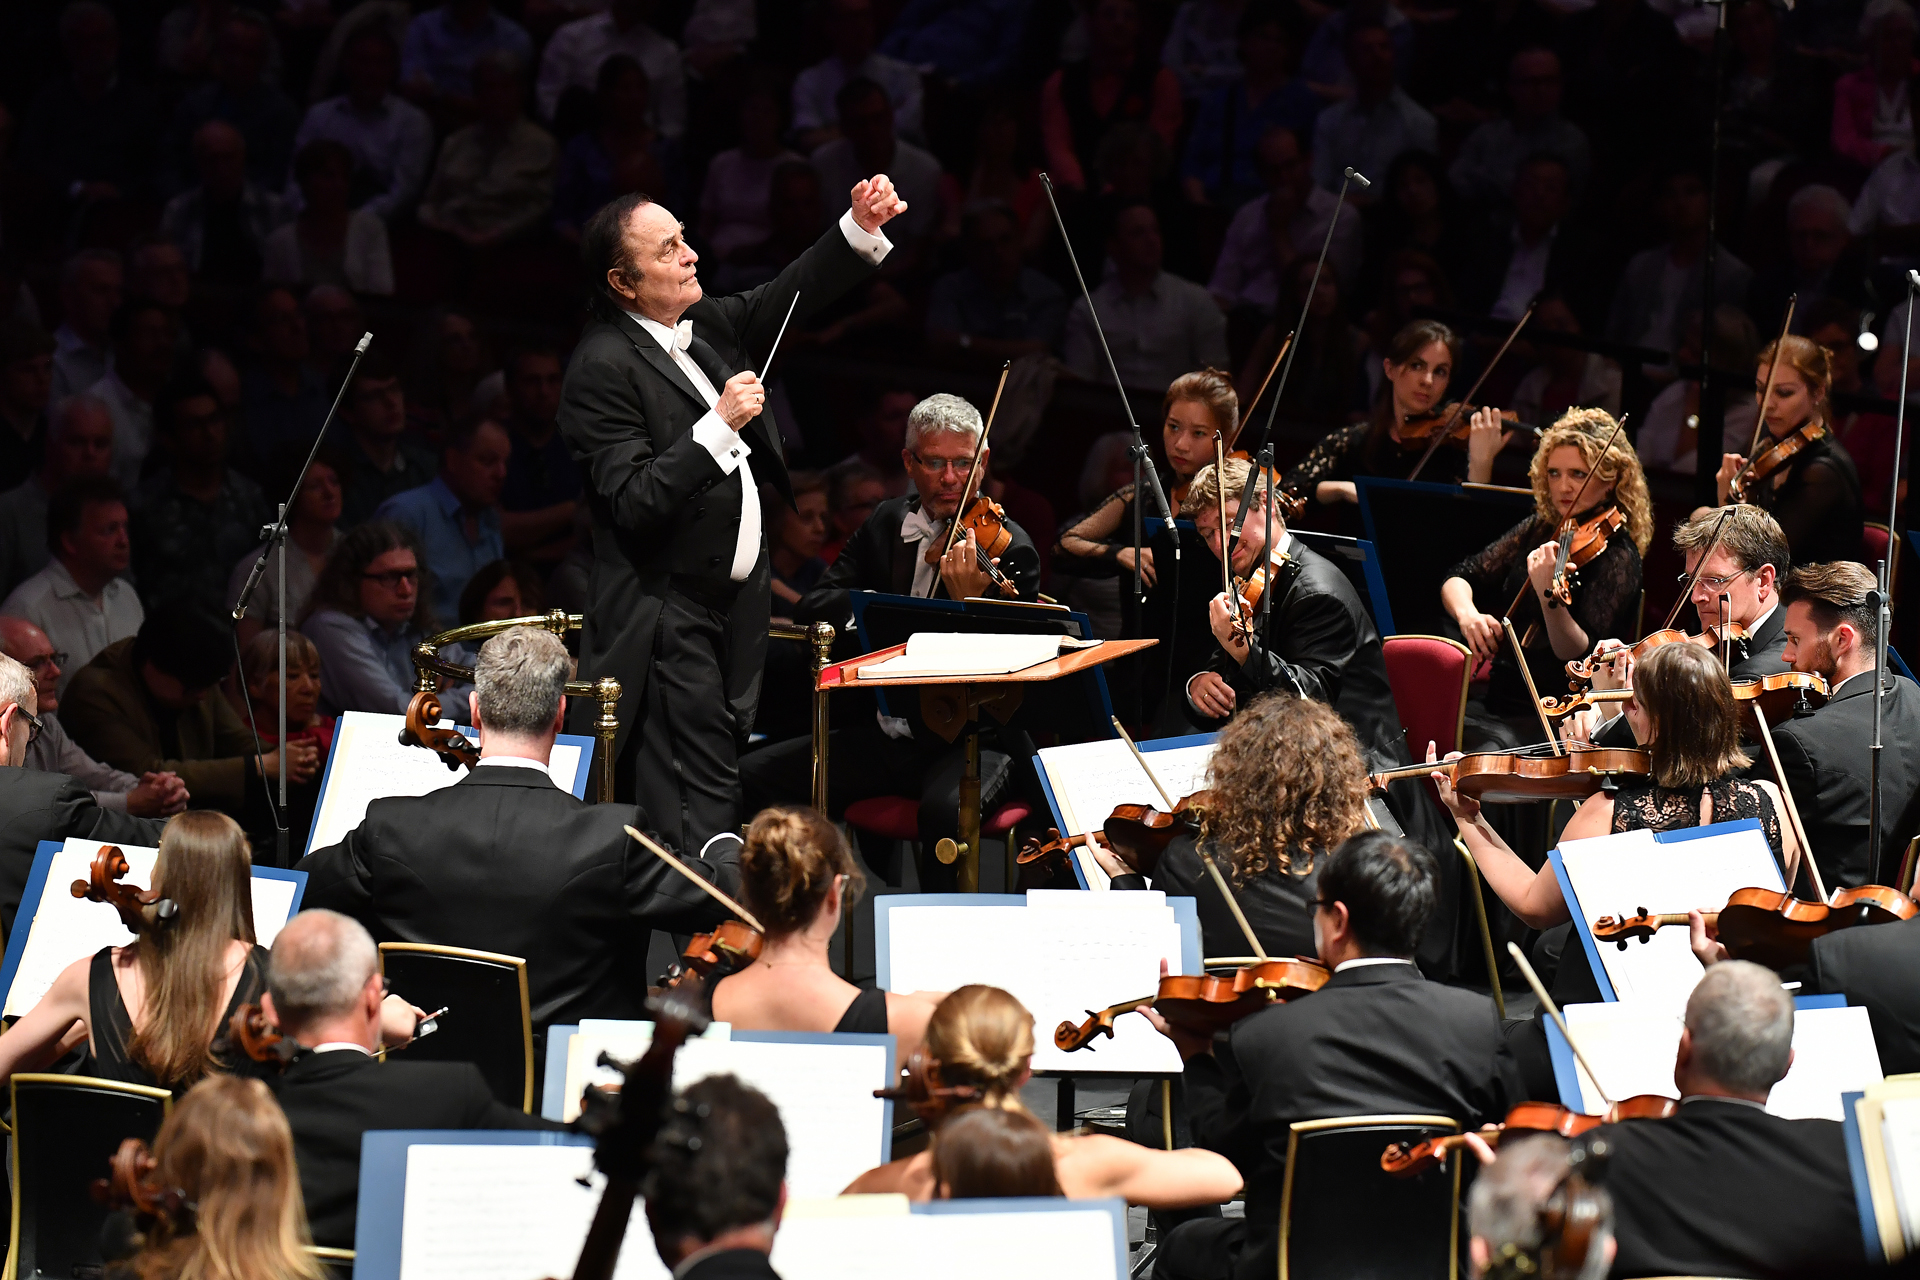 Conductor Charles Dutoit conducts the Royal Philharmonic Orchestra at the BBC Proms at the Royal Albert Hall.                                  Featuring: Charles Dutoit                 Where: London, United Kingdom                 When: 17 Aug 2017                 Credit: BBC/Chris Christodoulou/Supplied by WENN.com{&amp;nbsp;}<p></p>